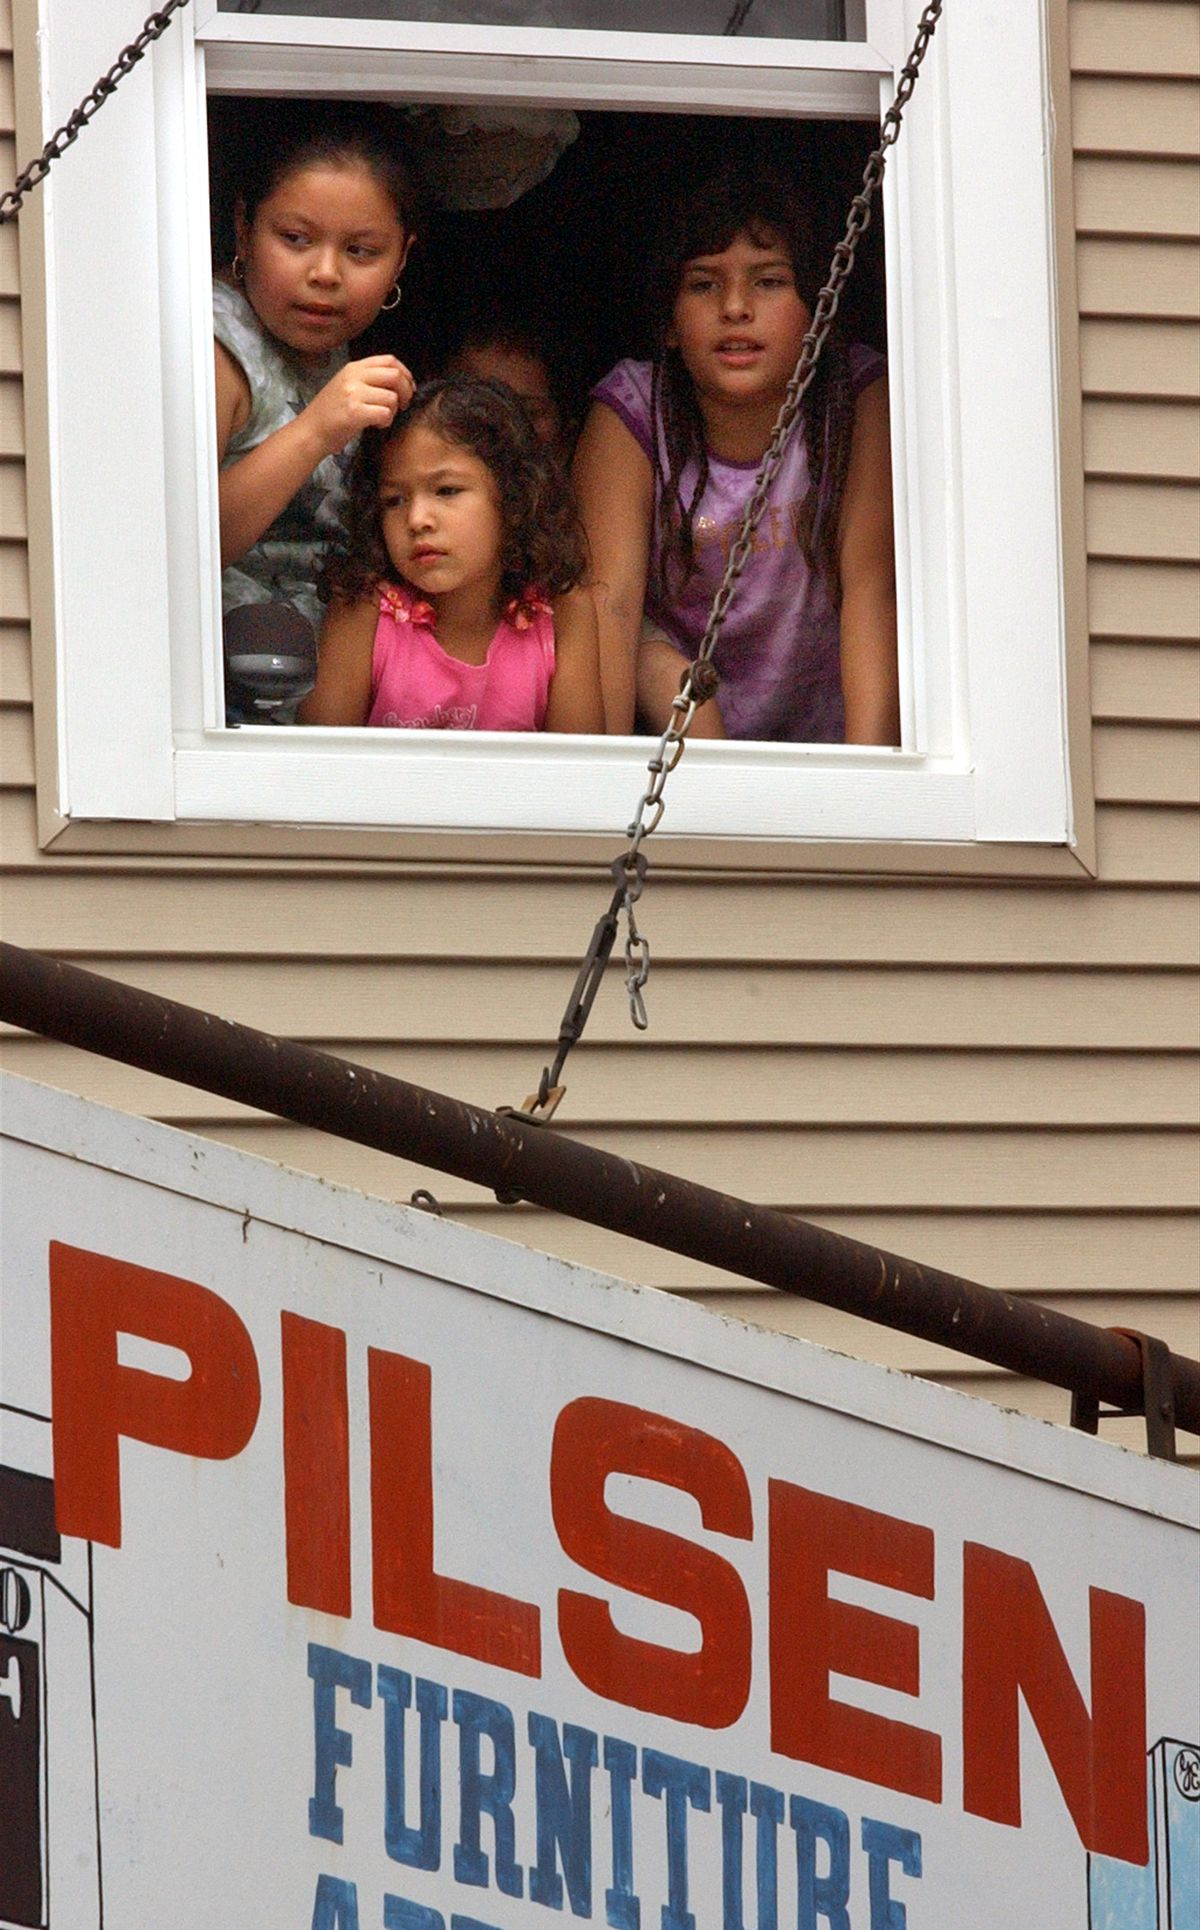 9-5-04 Annual Mexican Independence Day walked from Loomis & 18th street to Damen Street along 18th street thru the Pilsen neighborhood and thousands came out to greet the parade marchers and floats... here ..... kids watch from a 2nd floor window